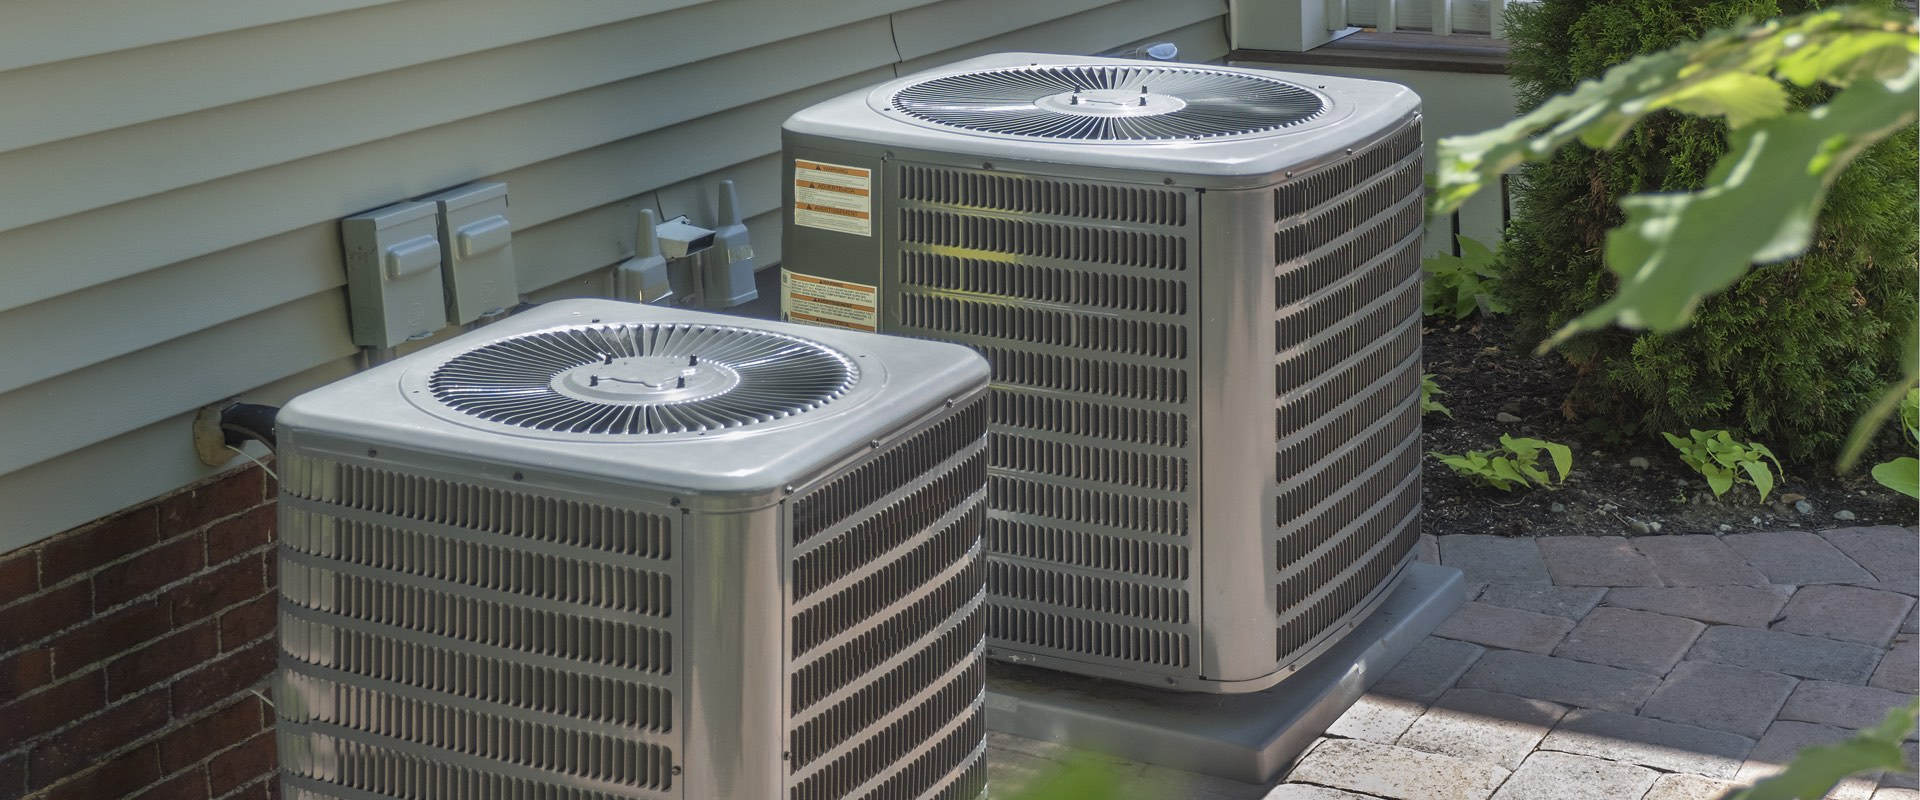 Residential HVAC Services and Units - Ellendale Services